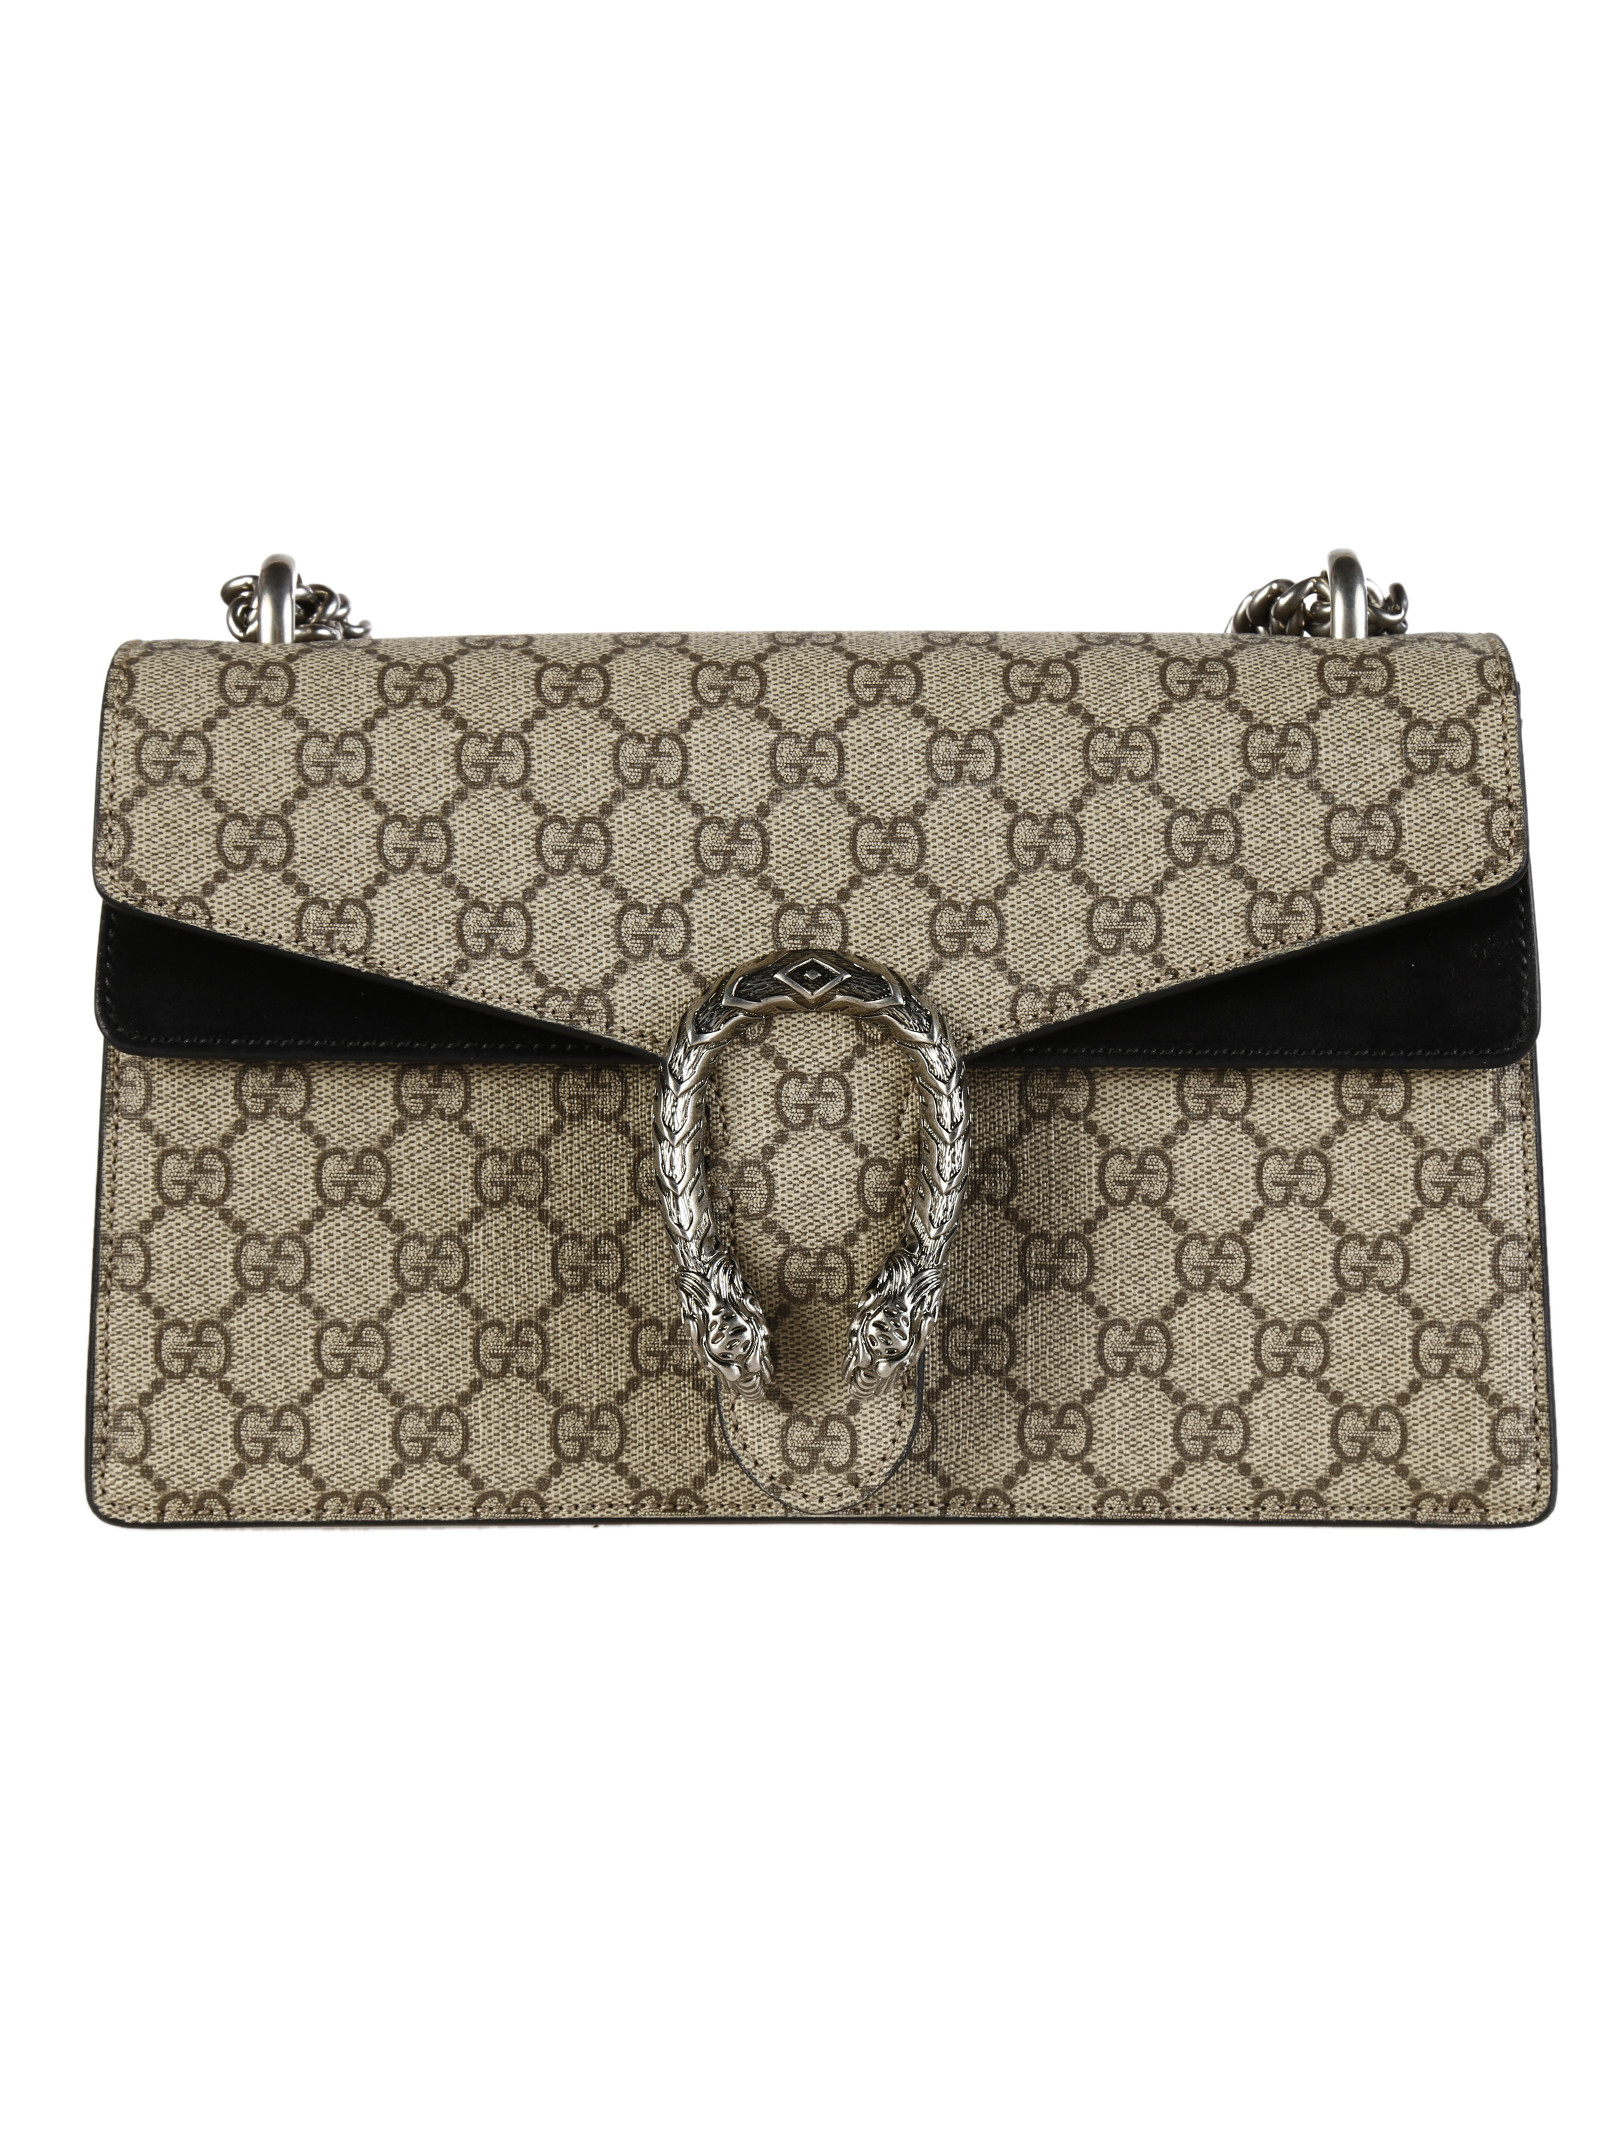 gucci gucci dionysus gg supreme canvas small shoulder